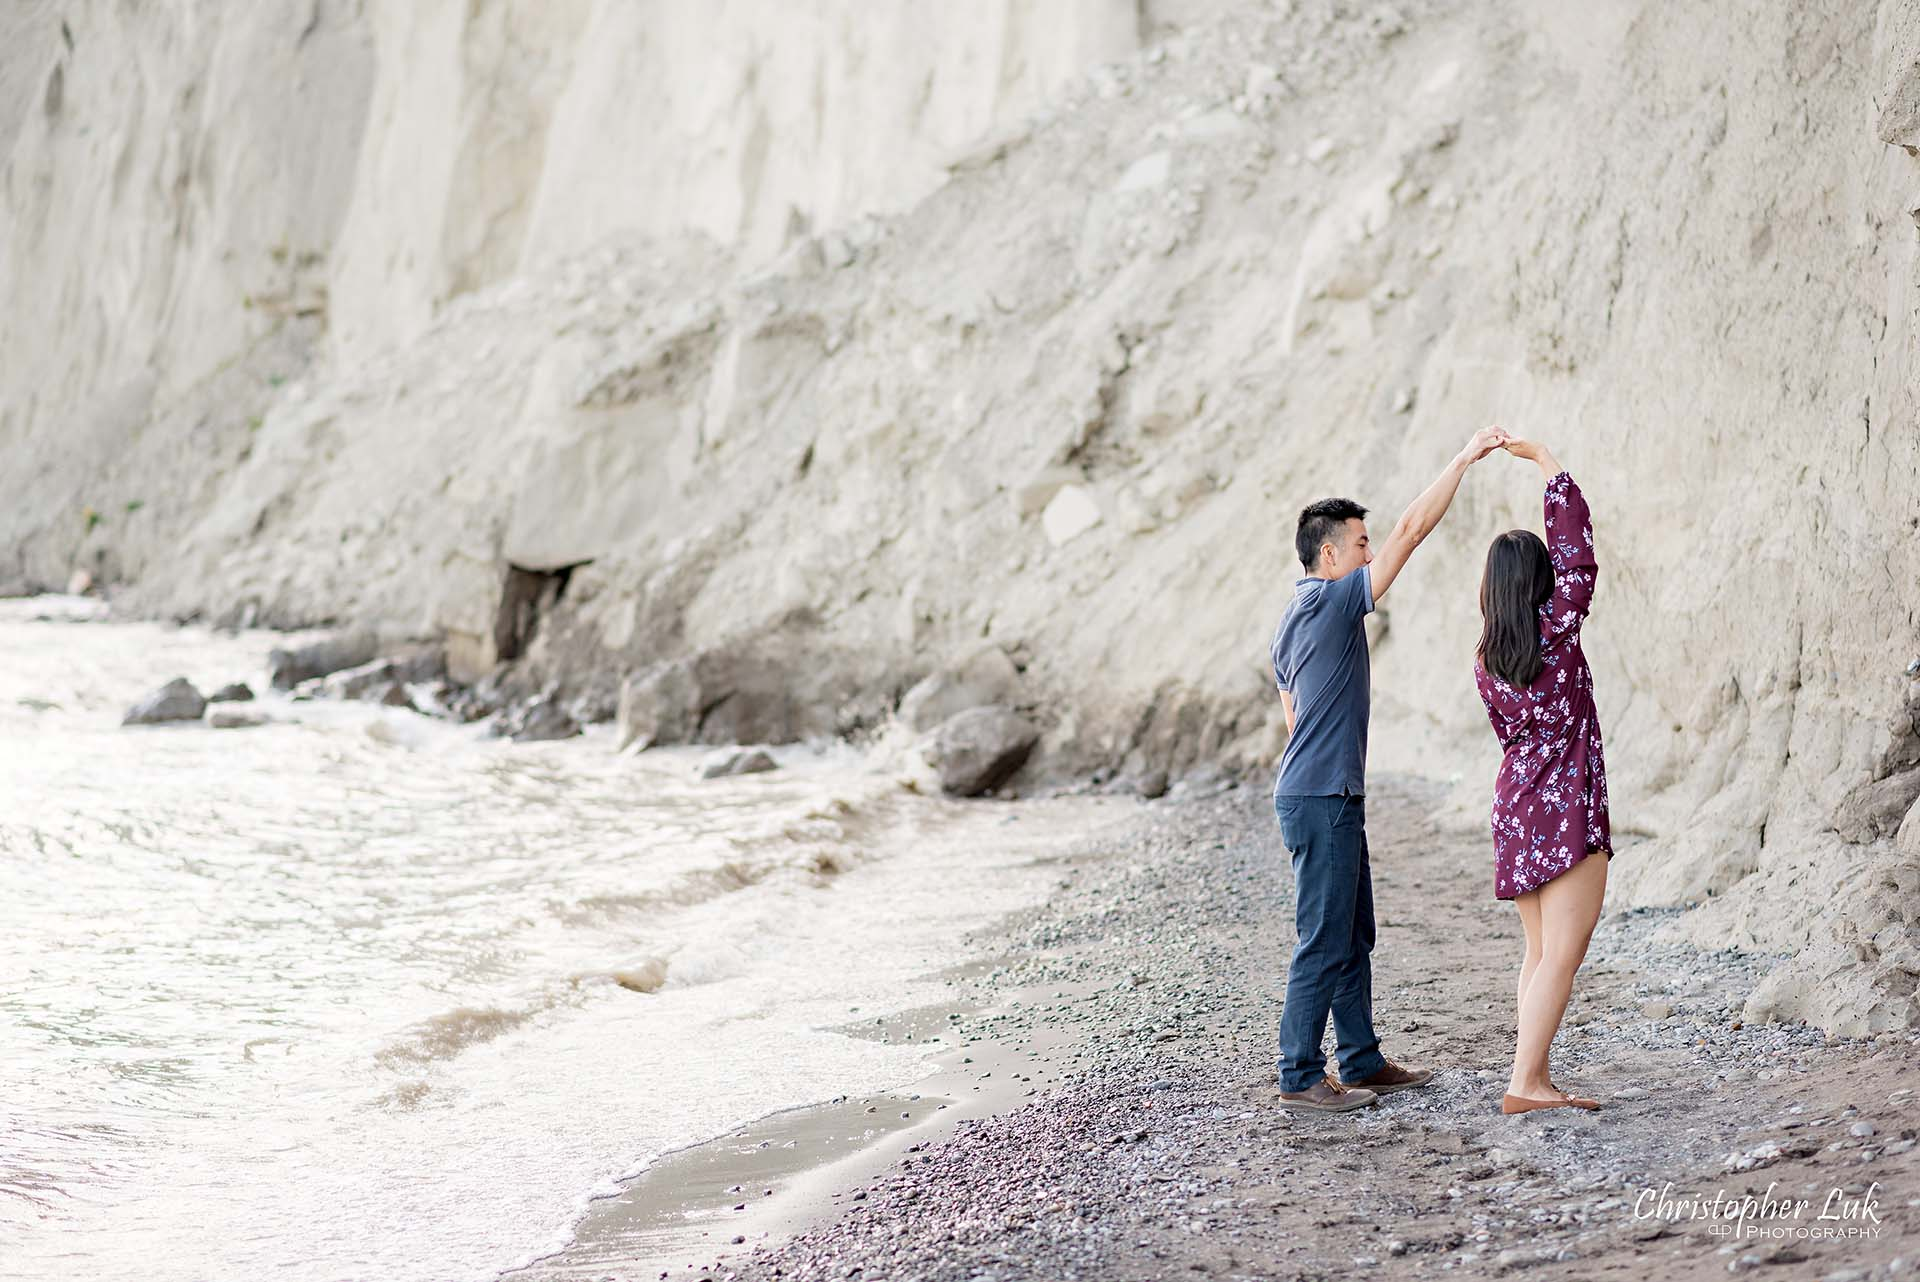 Christopher Luk Toronto Photographer Scarborough Bluffs Beach Park Sunset Surprise Wedding Marriage Engagement Proposal Candid Natural Photojournalistic Bride Groom Waterfront Water Lake Ontario Background Beachfront Sand Walking Together Holding Hands Edge of Water Smile Stone Dancing Spin Twirl Dance